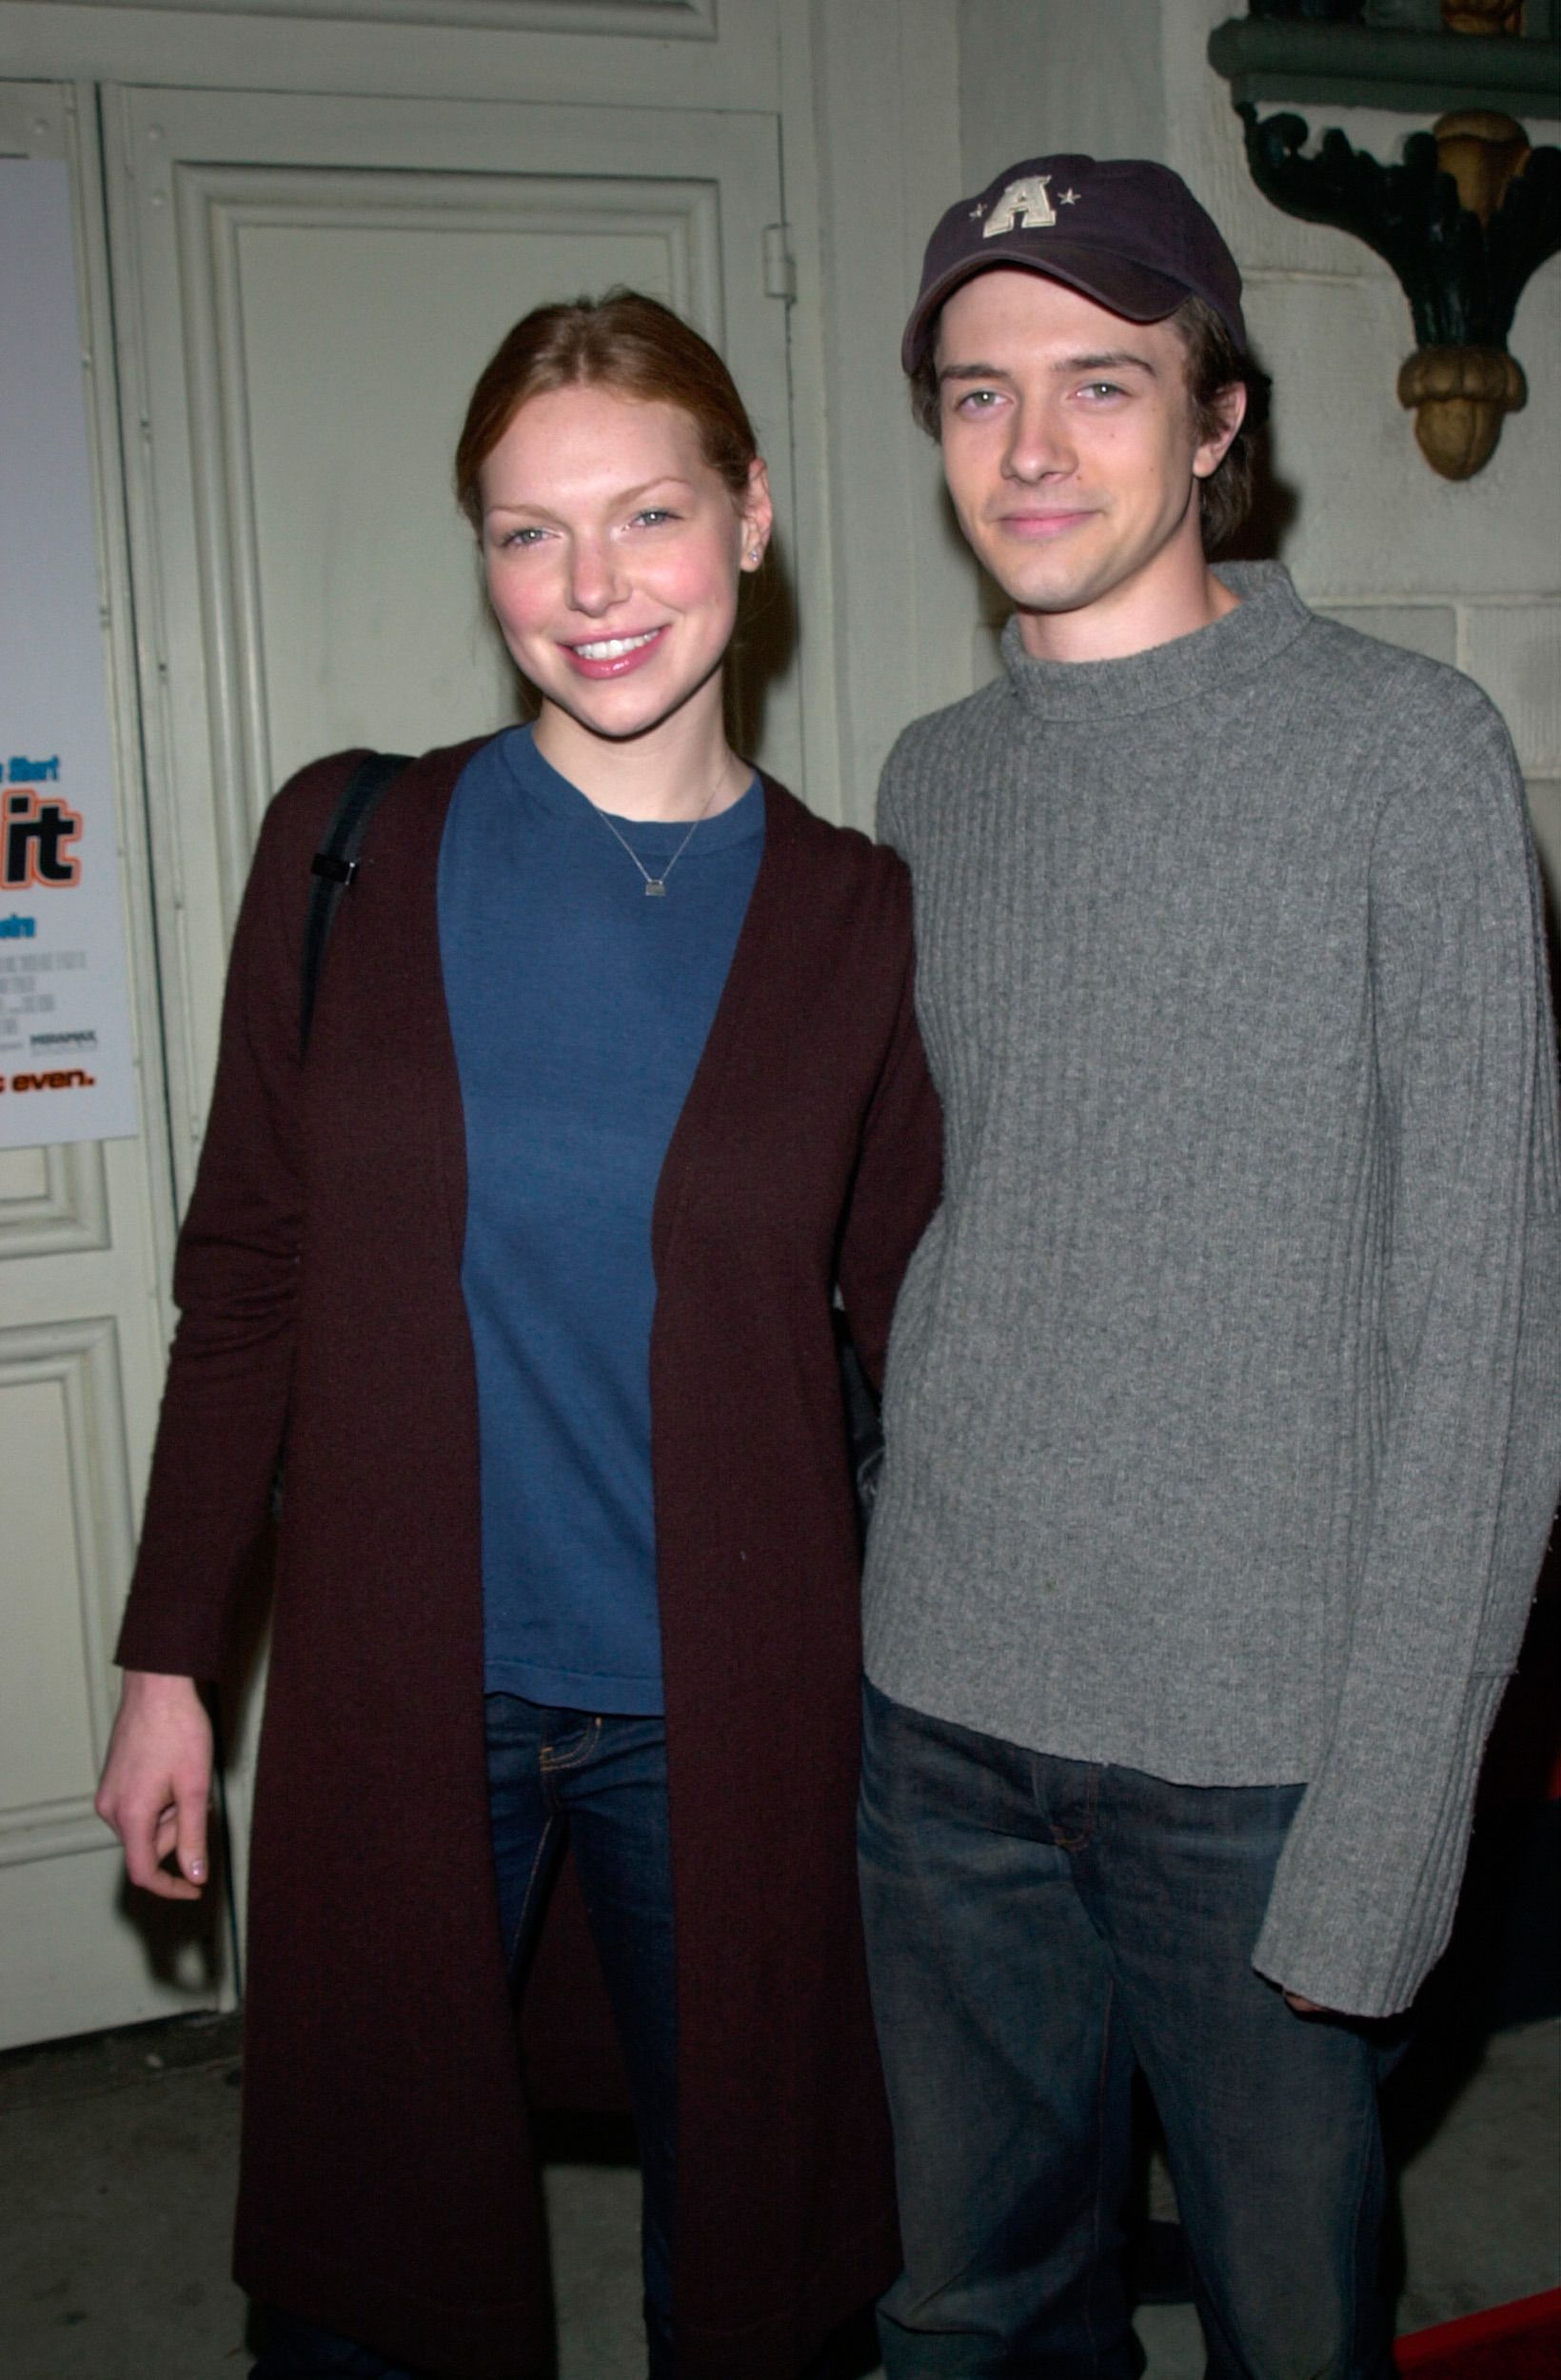 A young Laura Prepon and Topher Grace posing together.